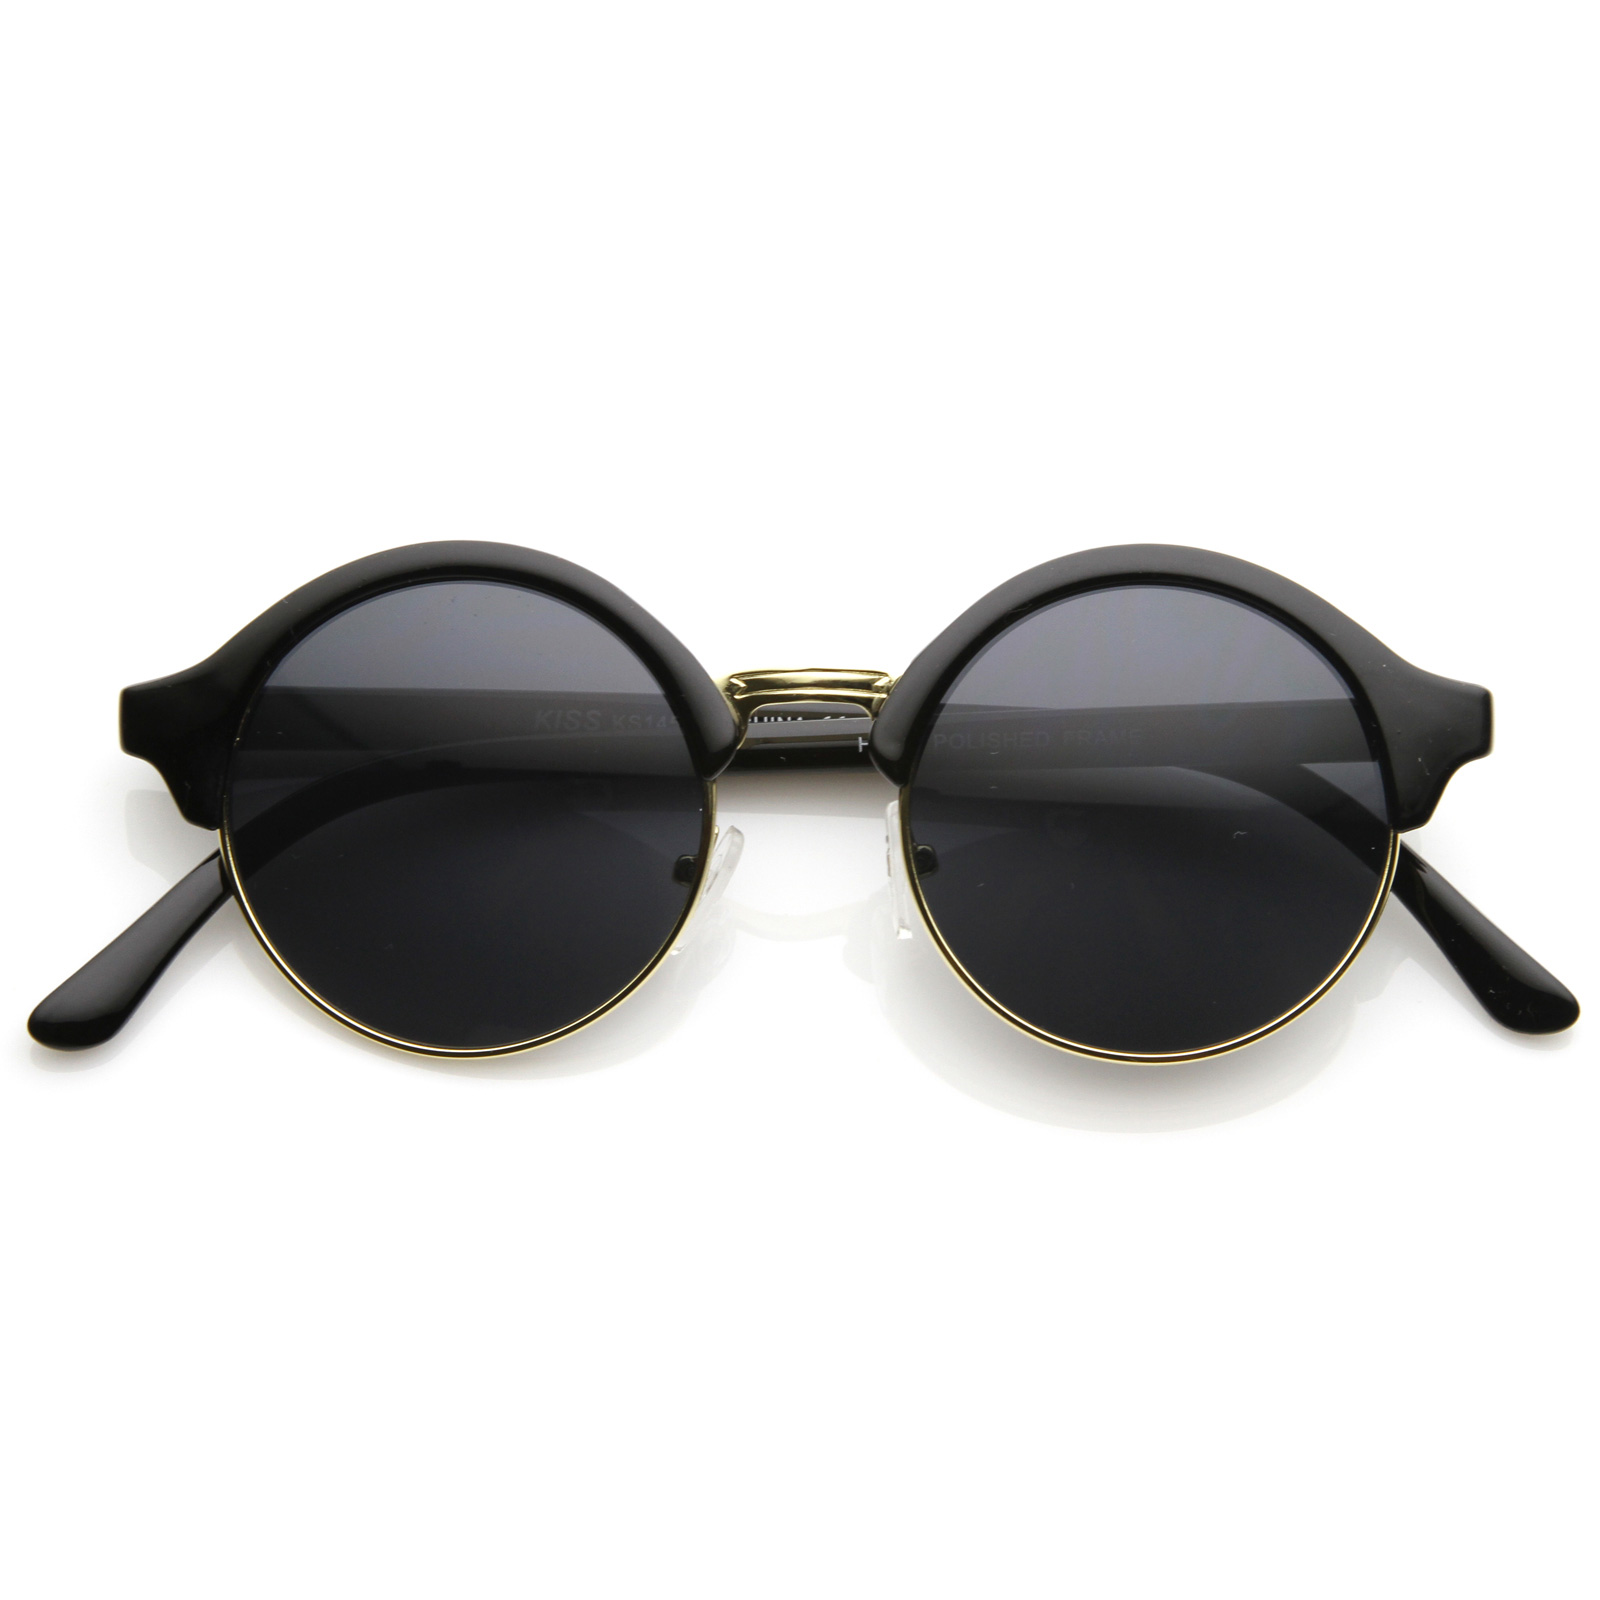 Discover Mens round framed sunglasses with ASOS. From oval, to polarised metal shapes, find your favorite sunnies with ASOS.